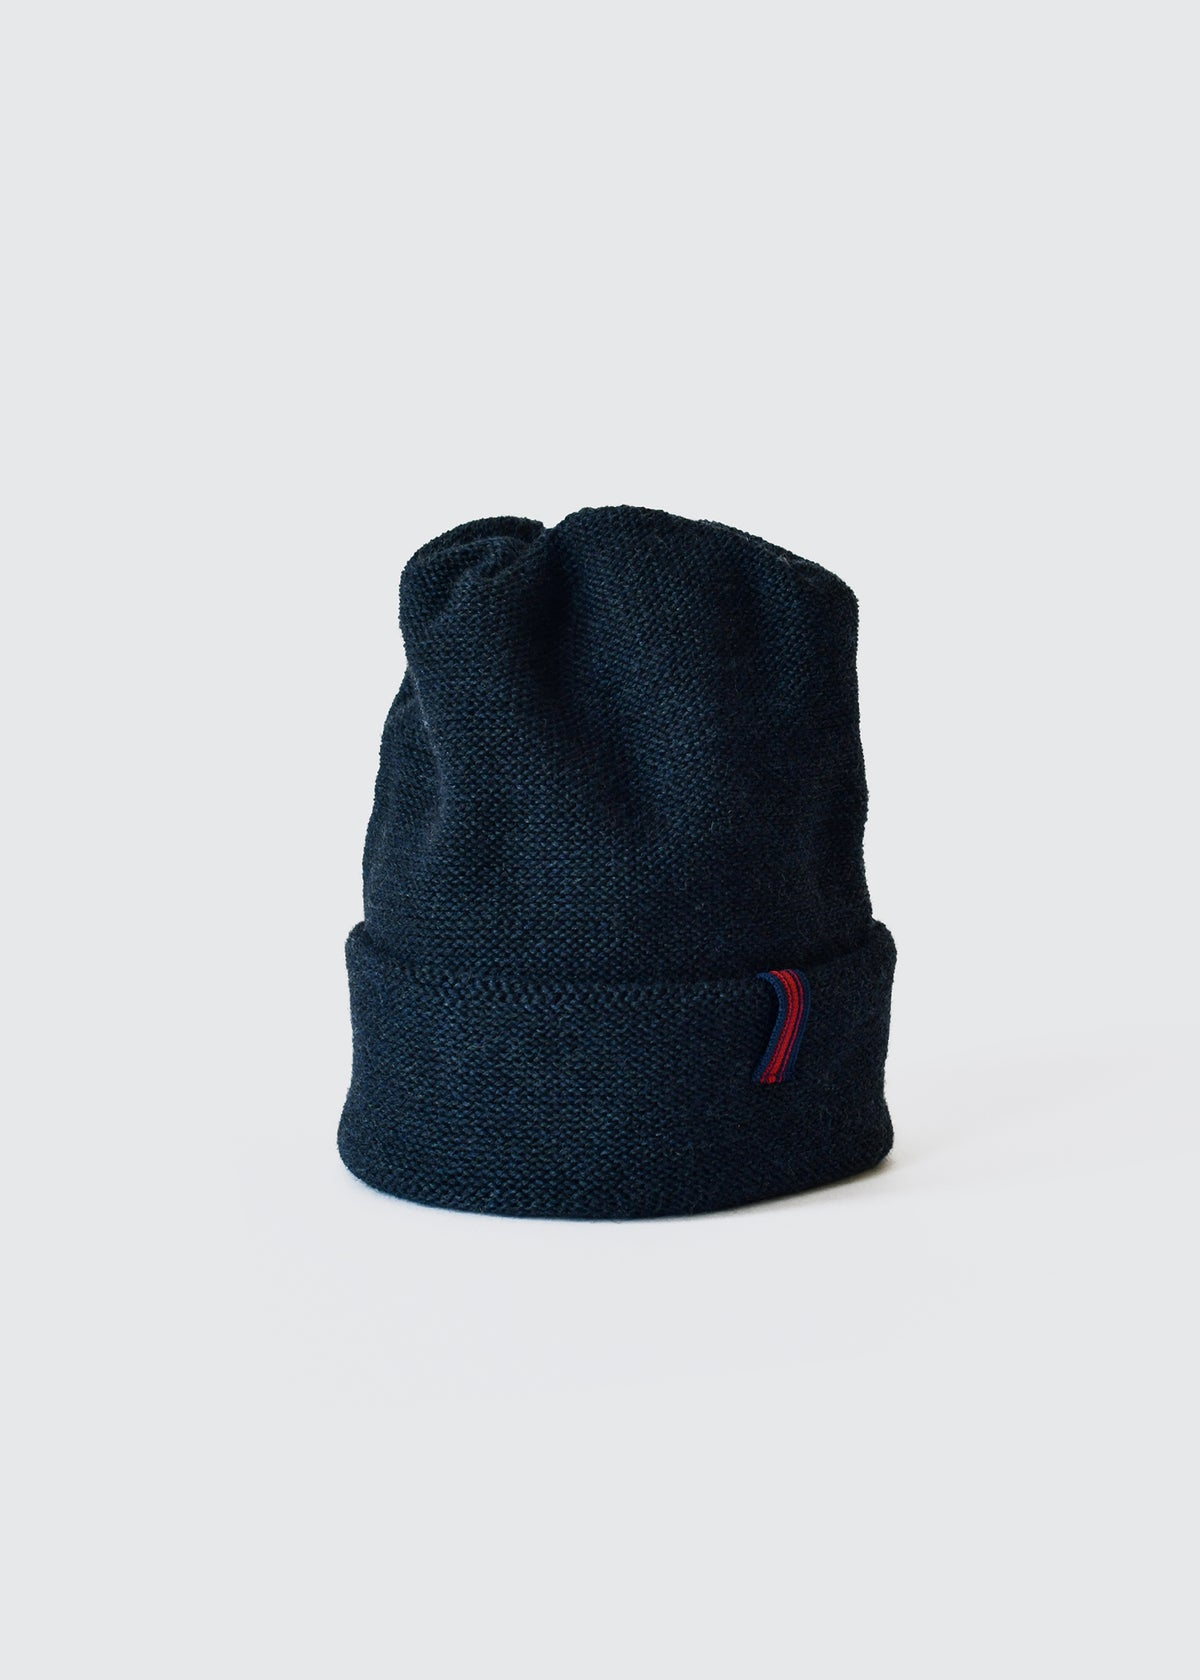 A04 - WATCH CAP - NAVY - Wilson & Willy's - MPLS Neighbor Goods